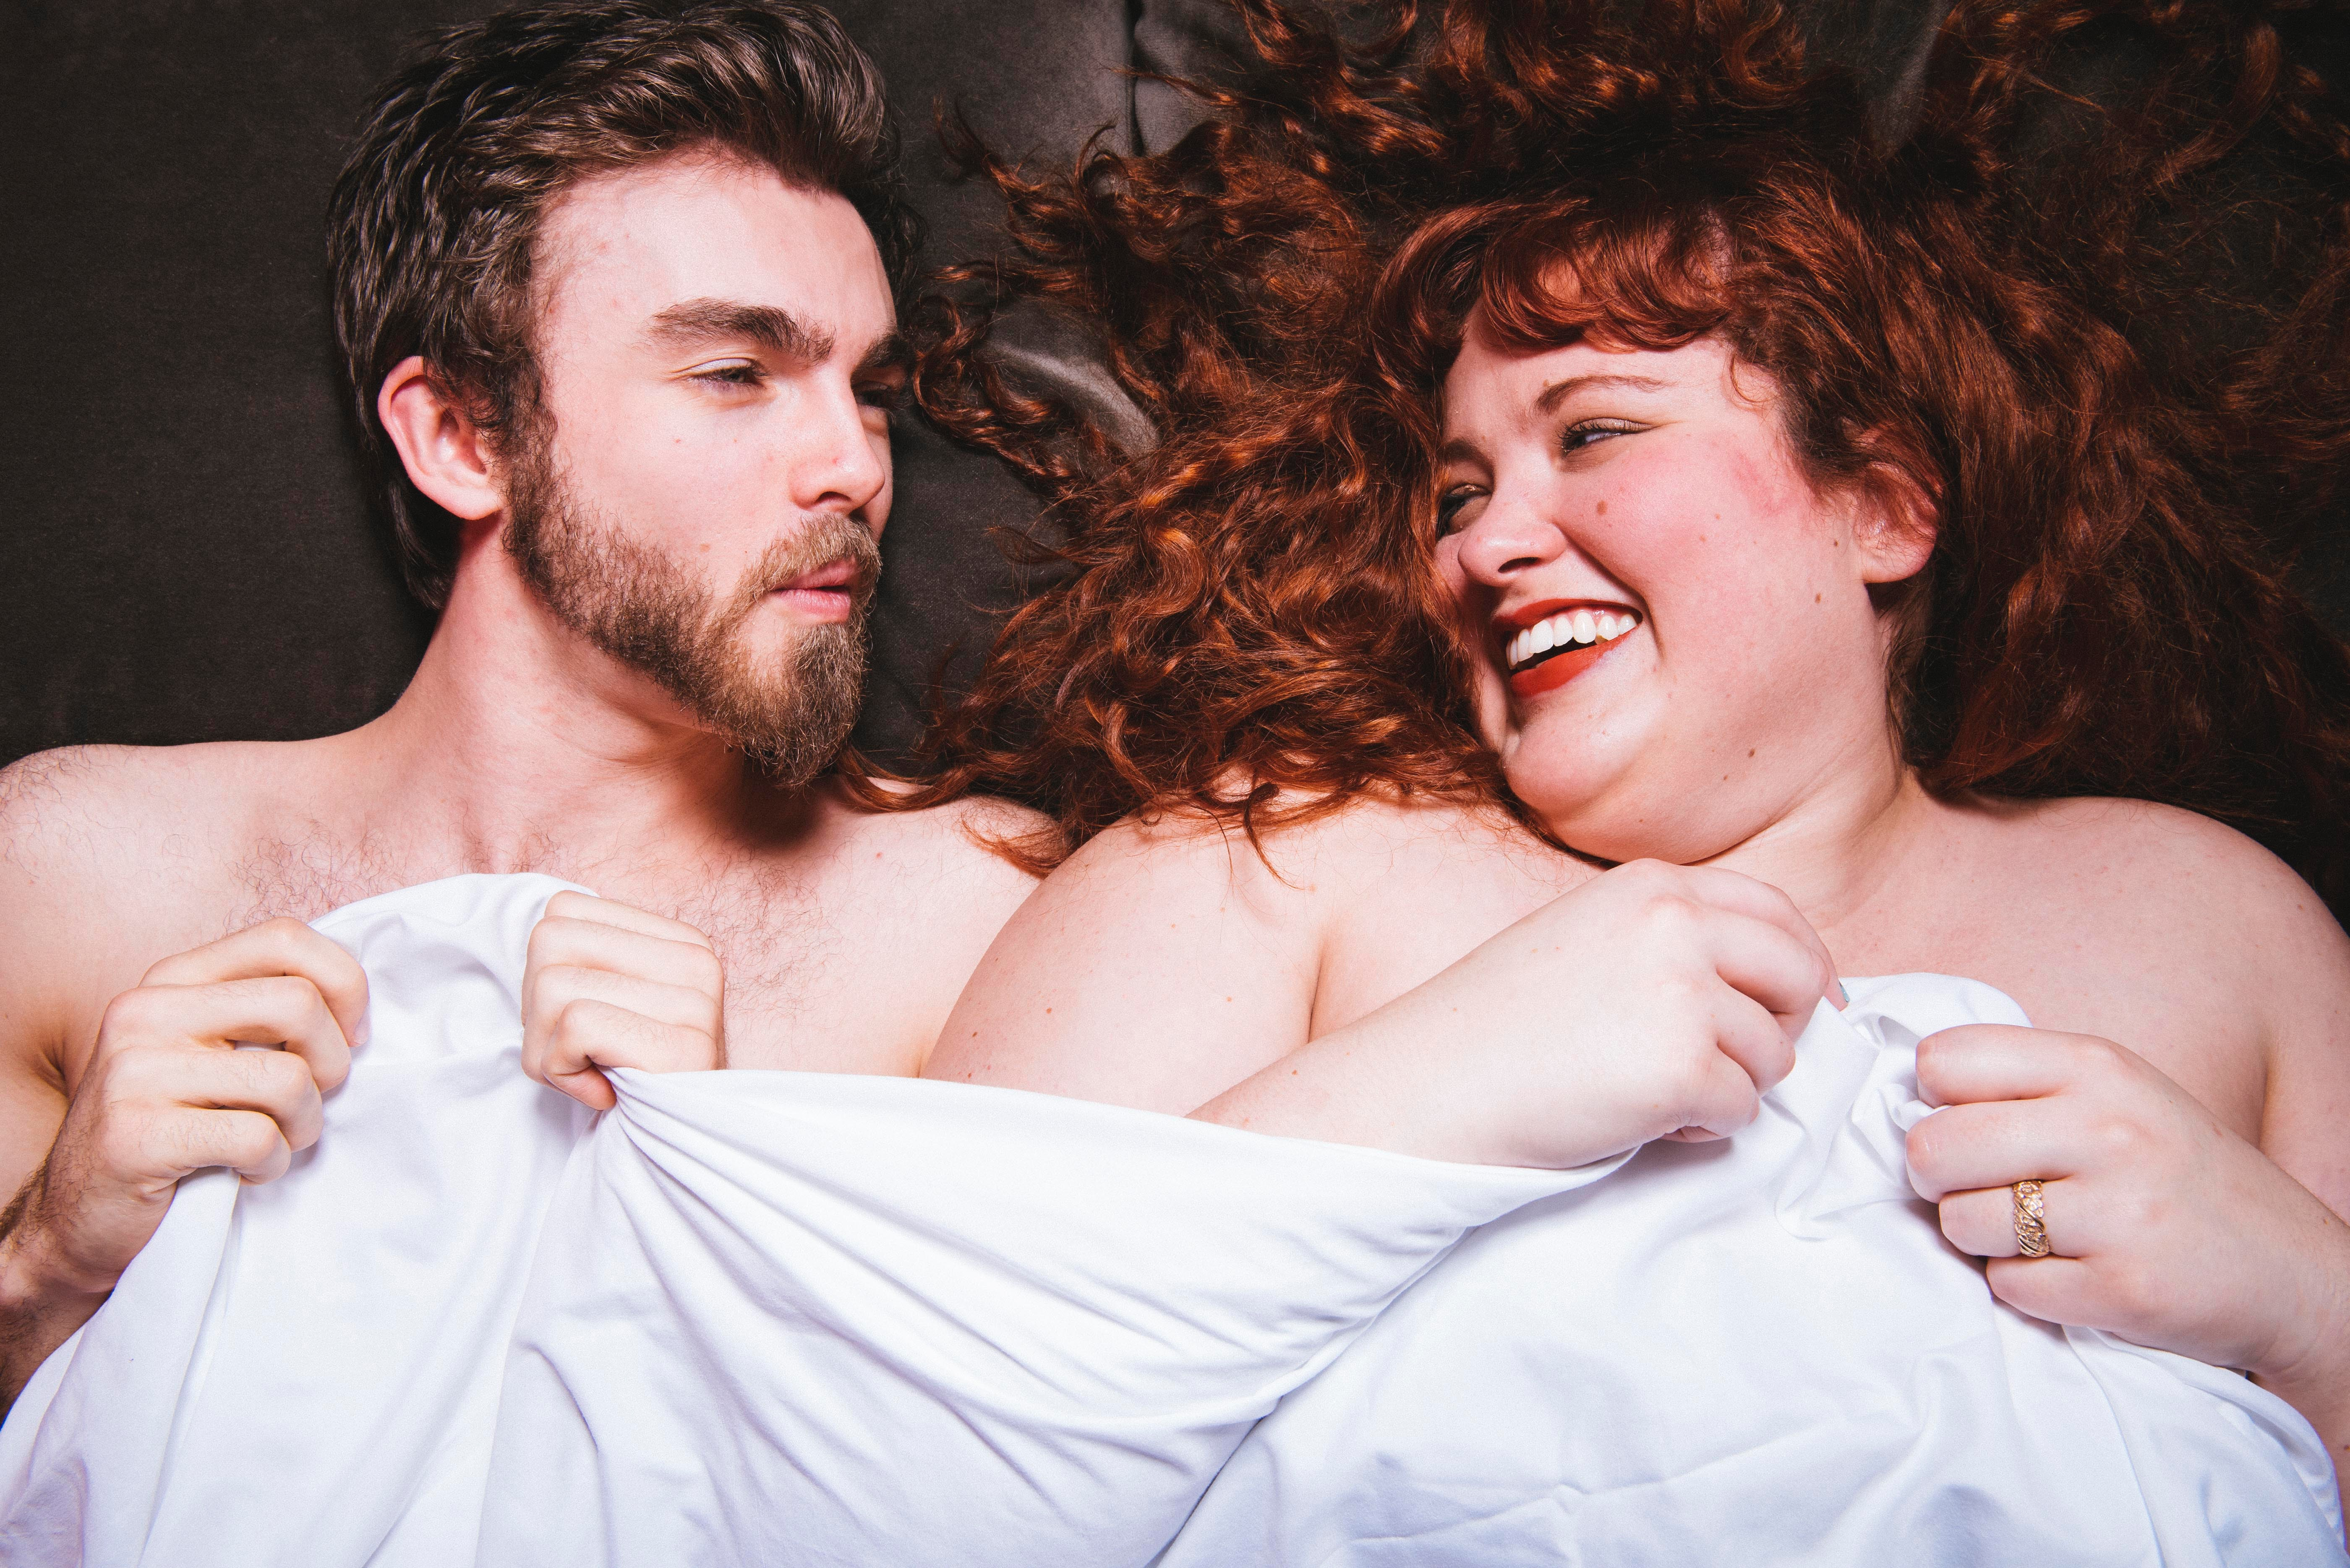 Sex couples pics and links